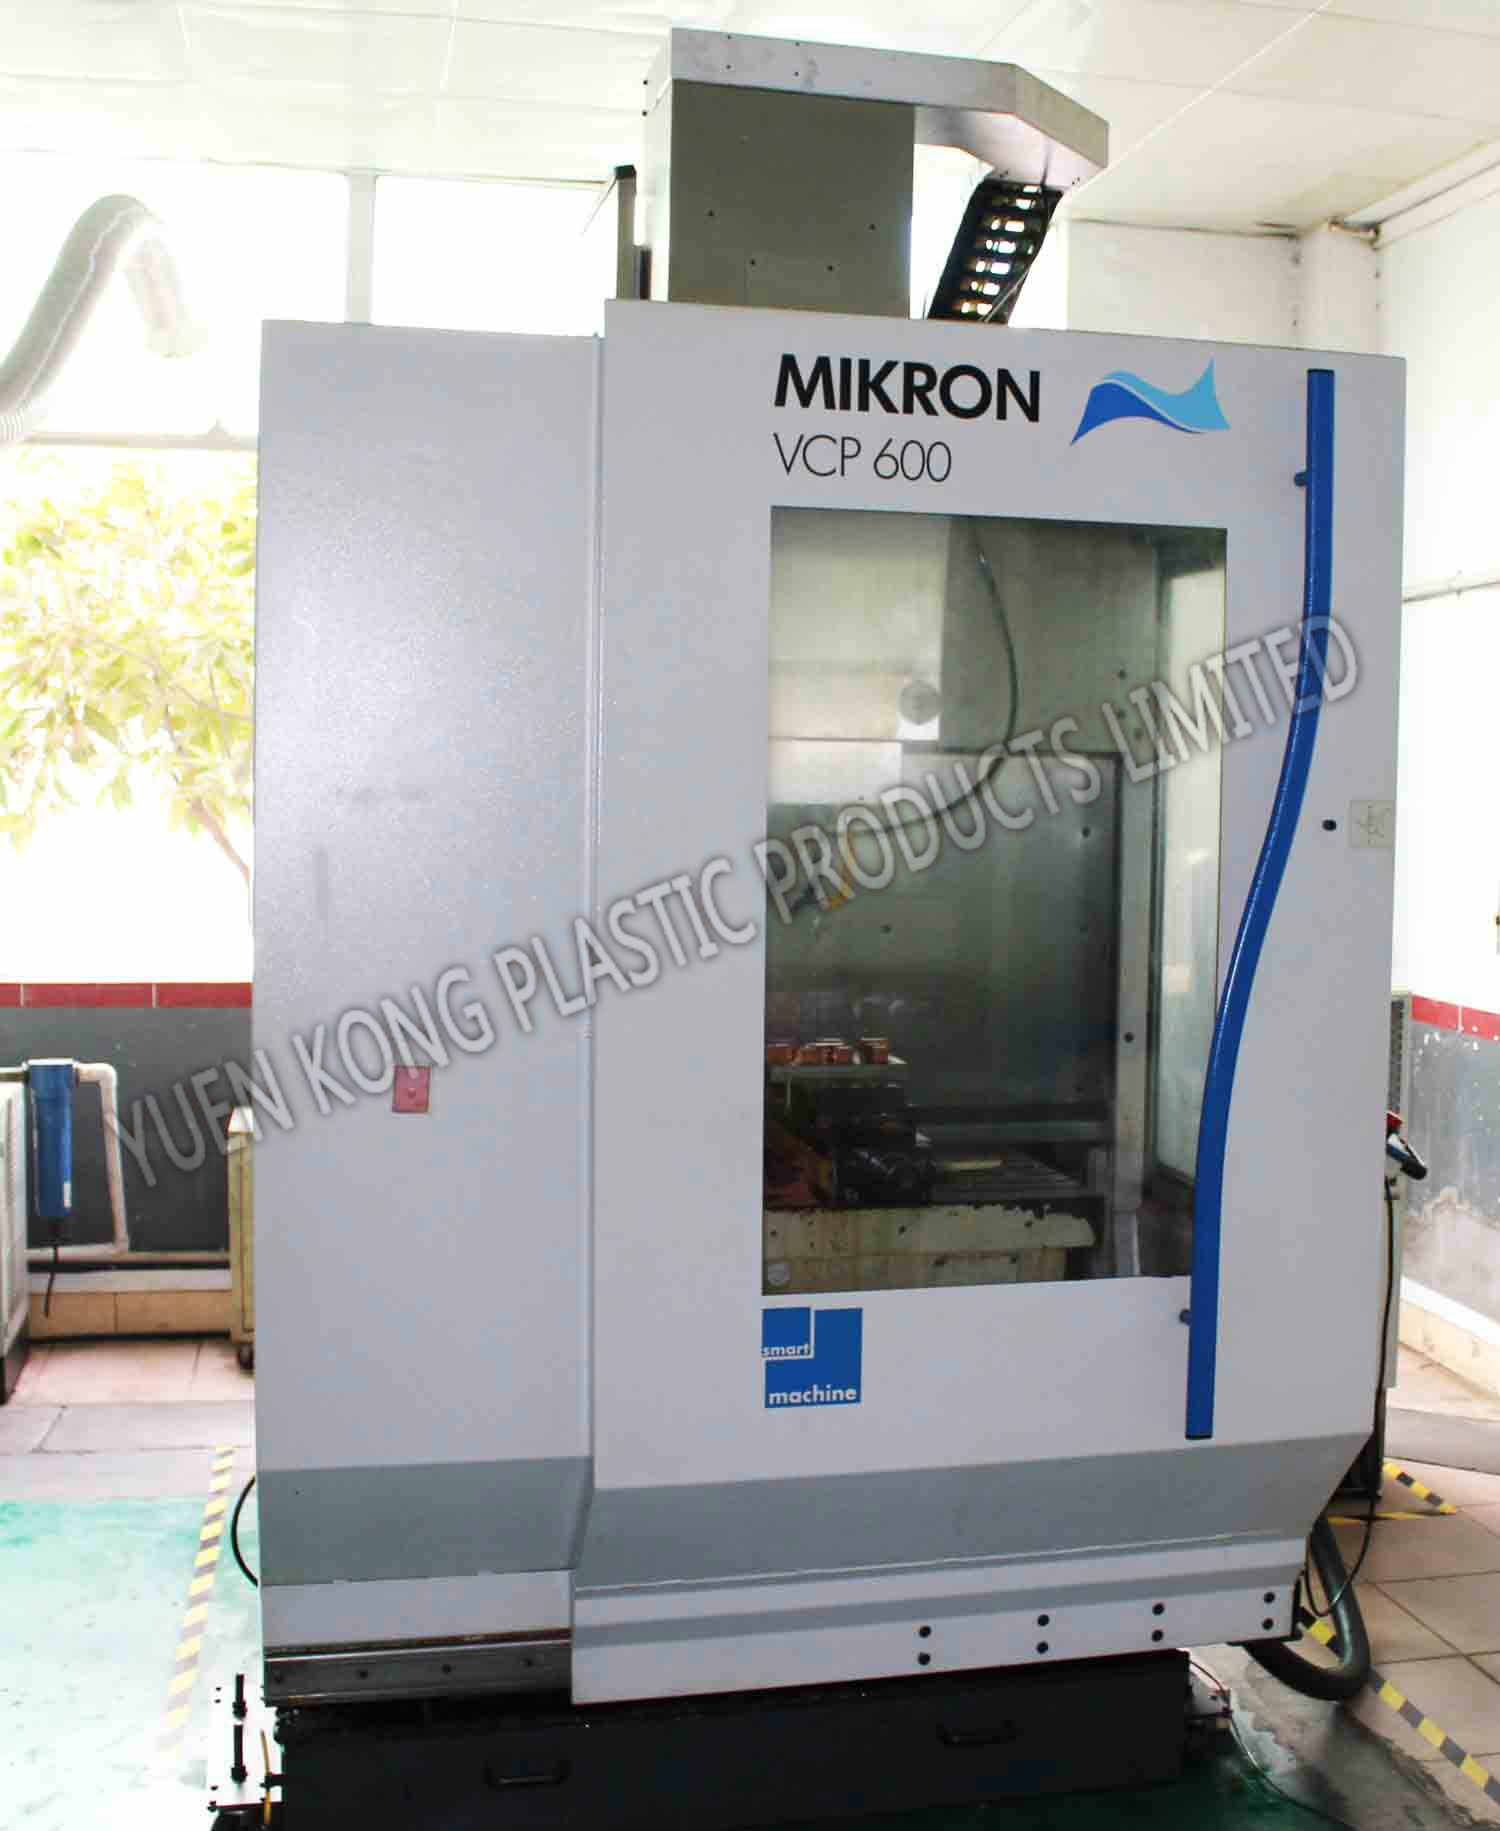 Swiss Mikron CNC machine